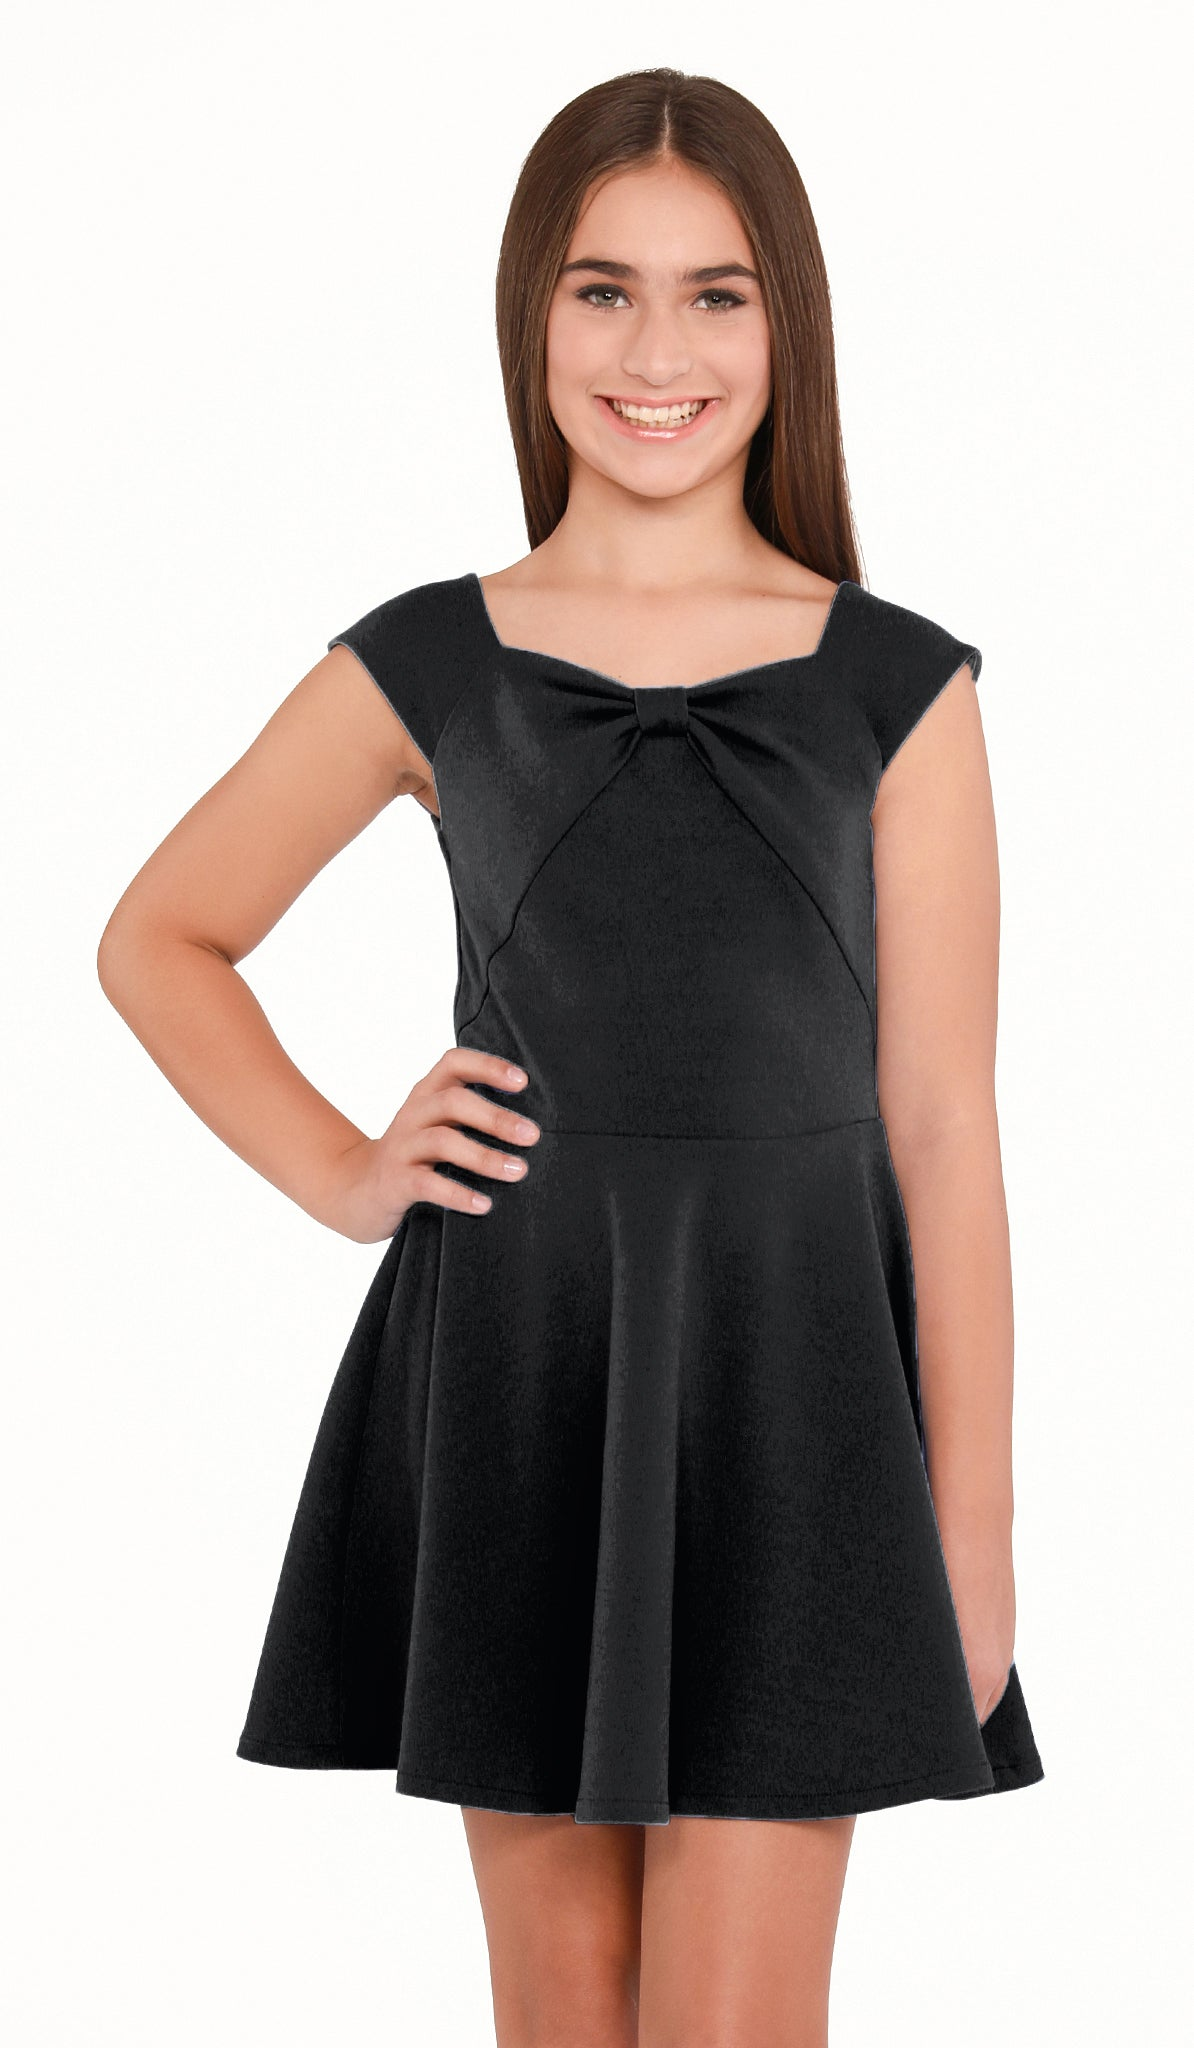 Sally Miller Liv Dress - Black stretch crepe georgette cap sleeve fit and flare dress with bow detail